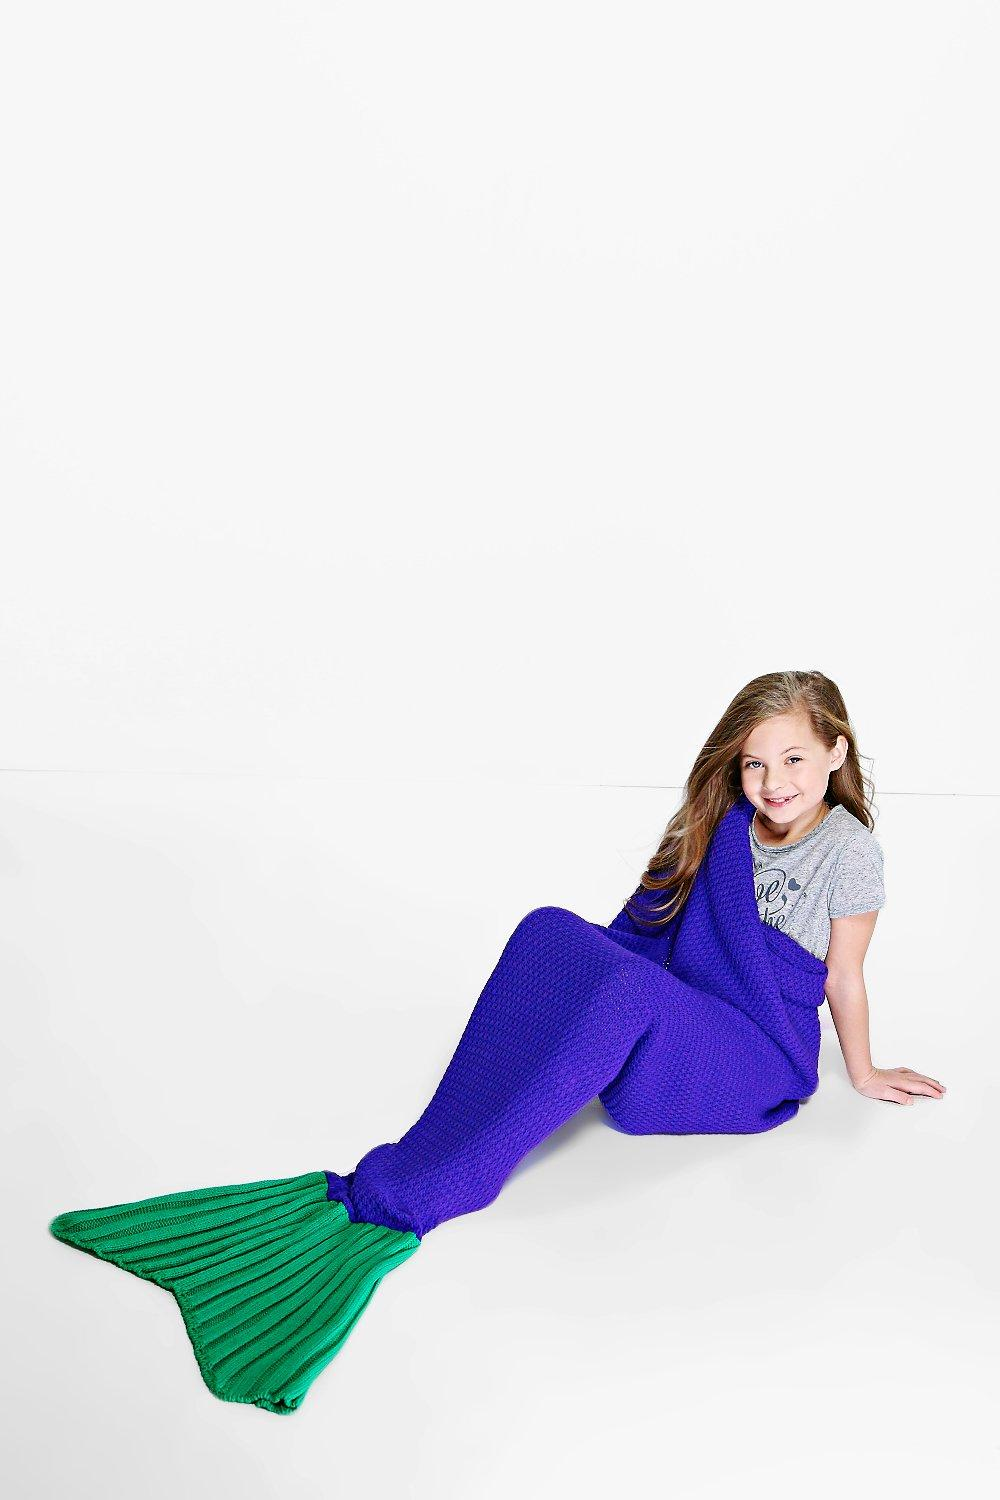 Mermaid Tail Blanket - purple - Girls Mermaid Tail